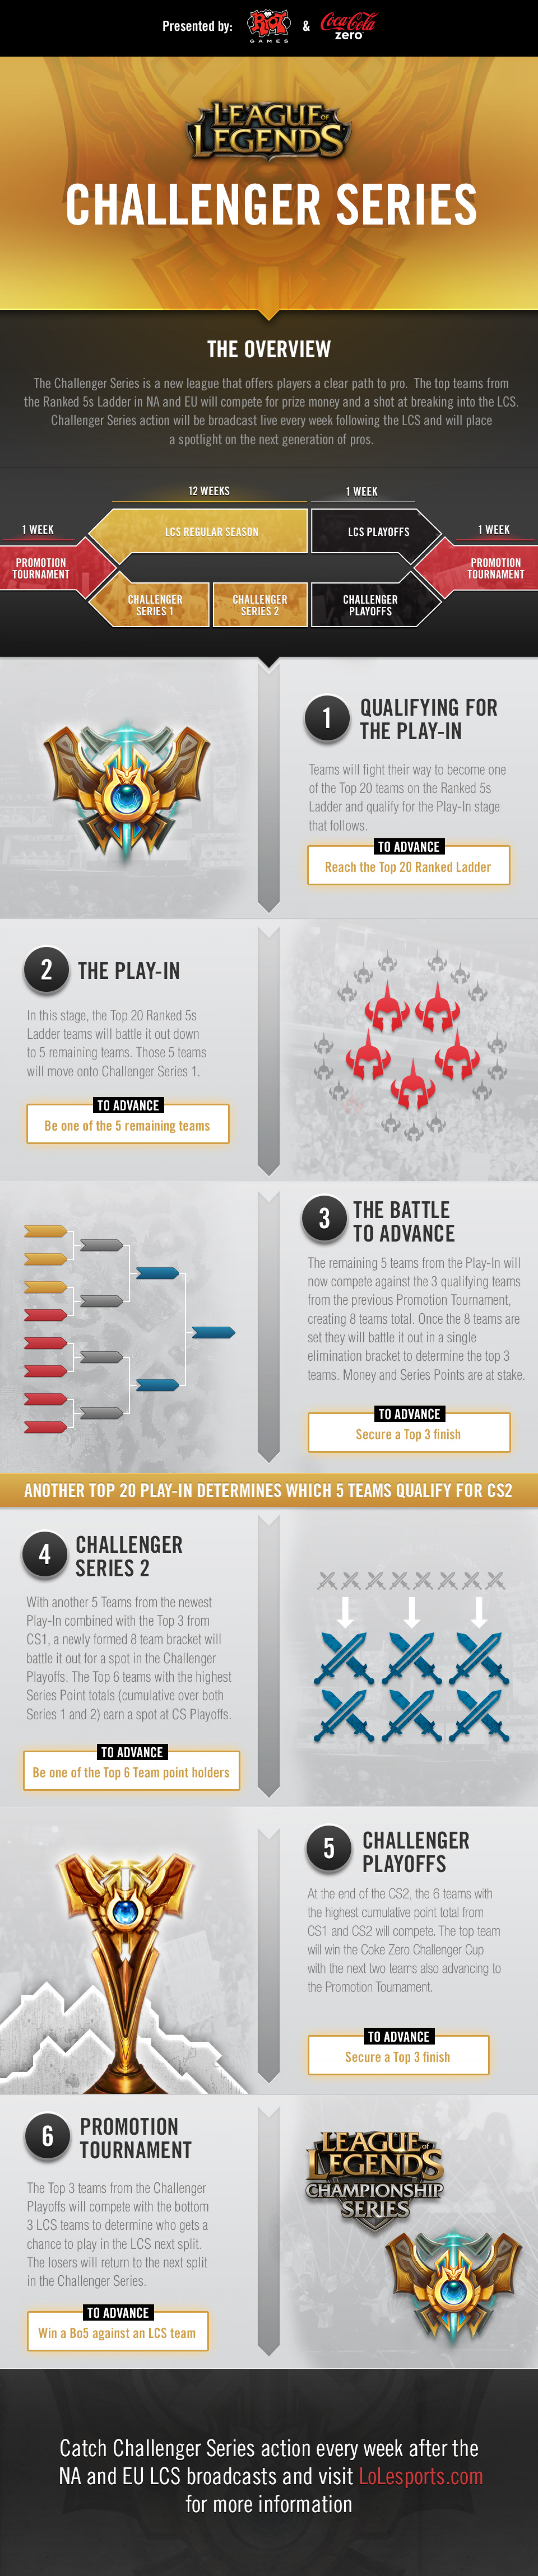 League of Legends Challenger Series Overview Infographic